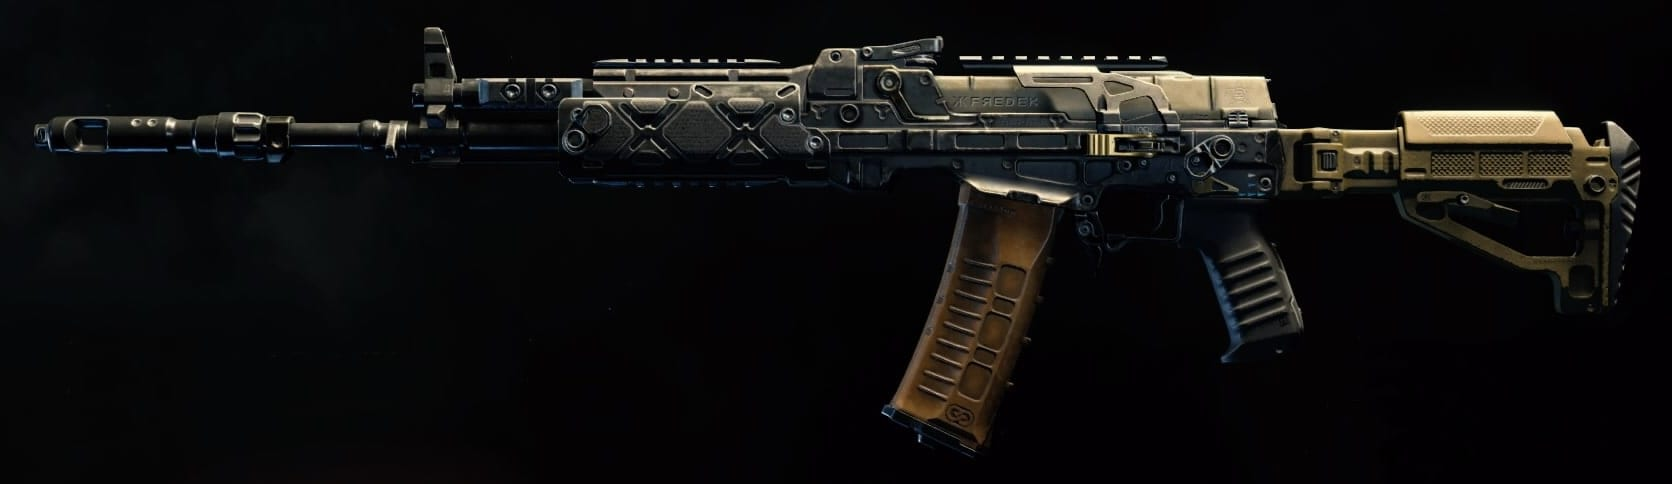 call of duty black ops 4 kn 57 silah